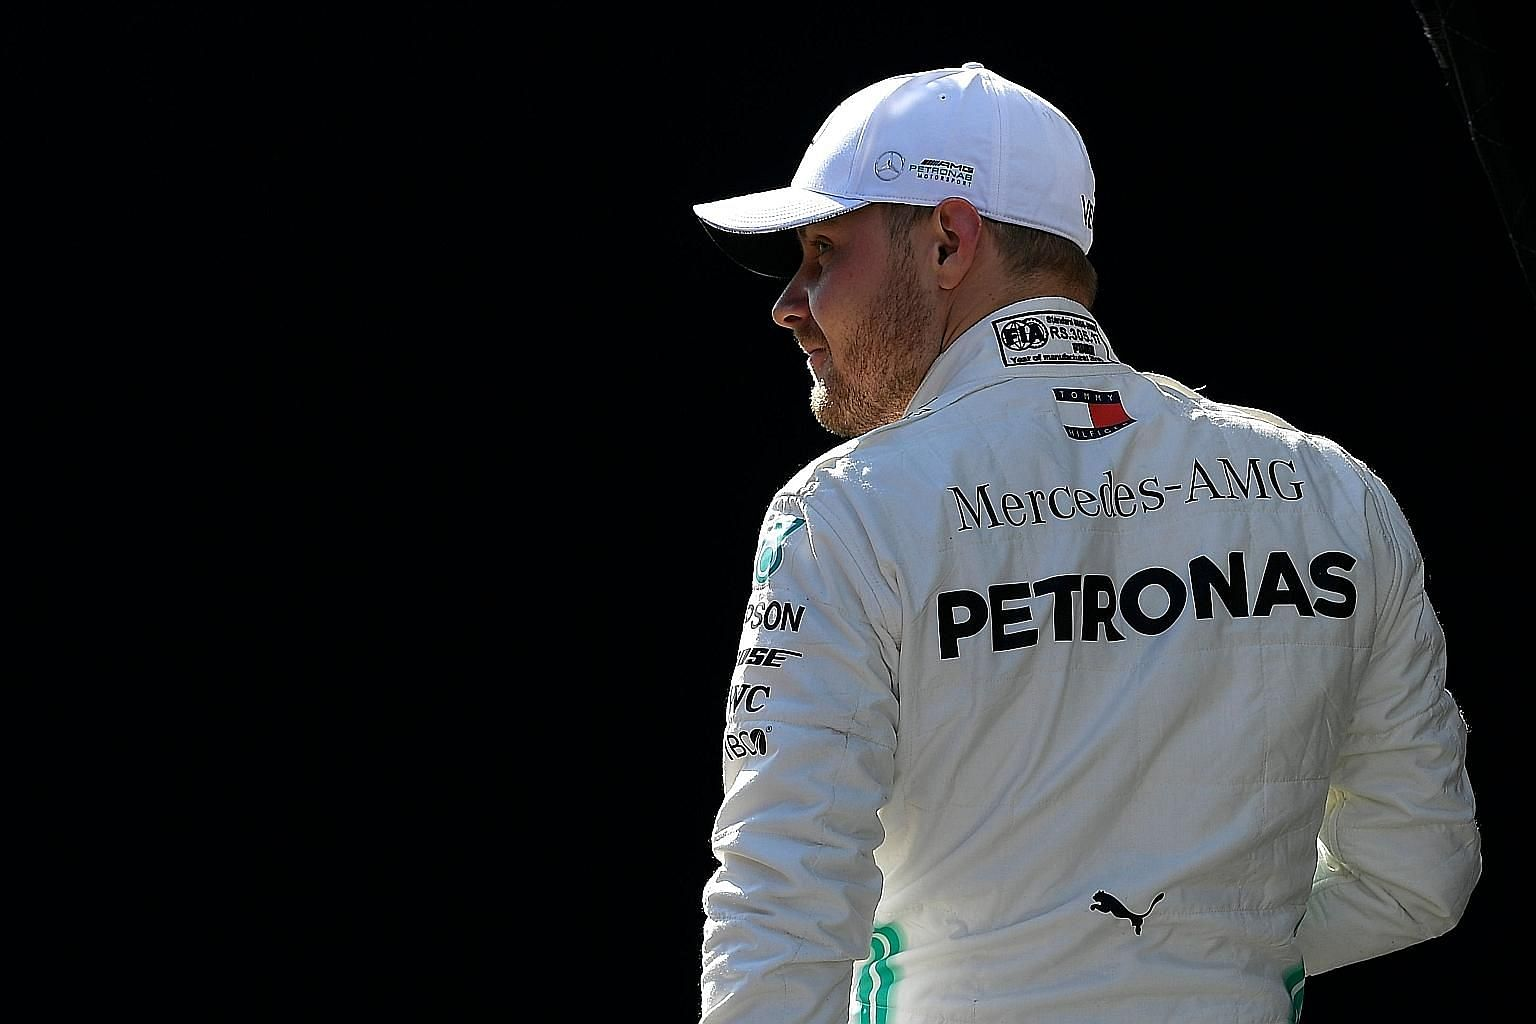 Valtteri Bottas set seven fastest laps last year but he did not finish in the top 10 in Azerbaijan.